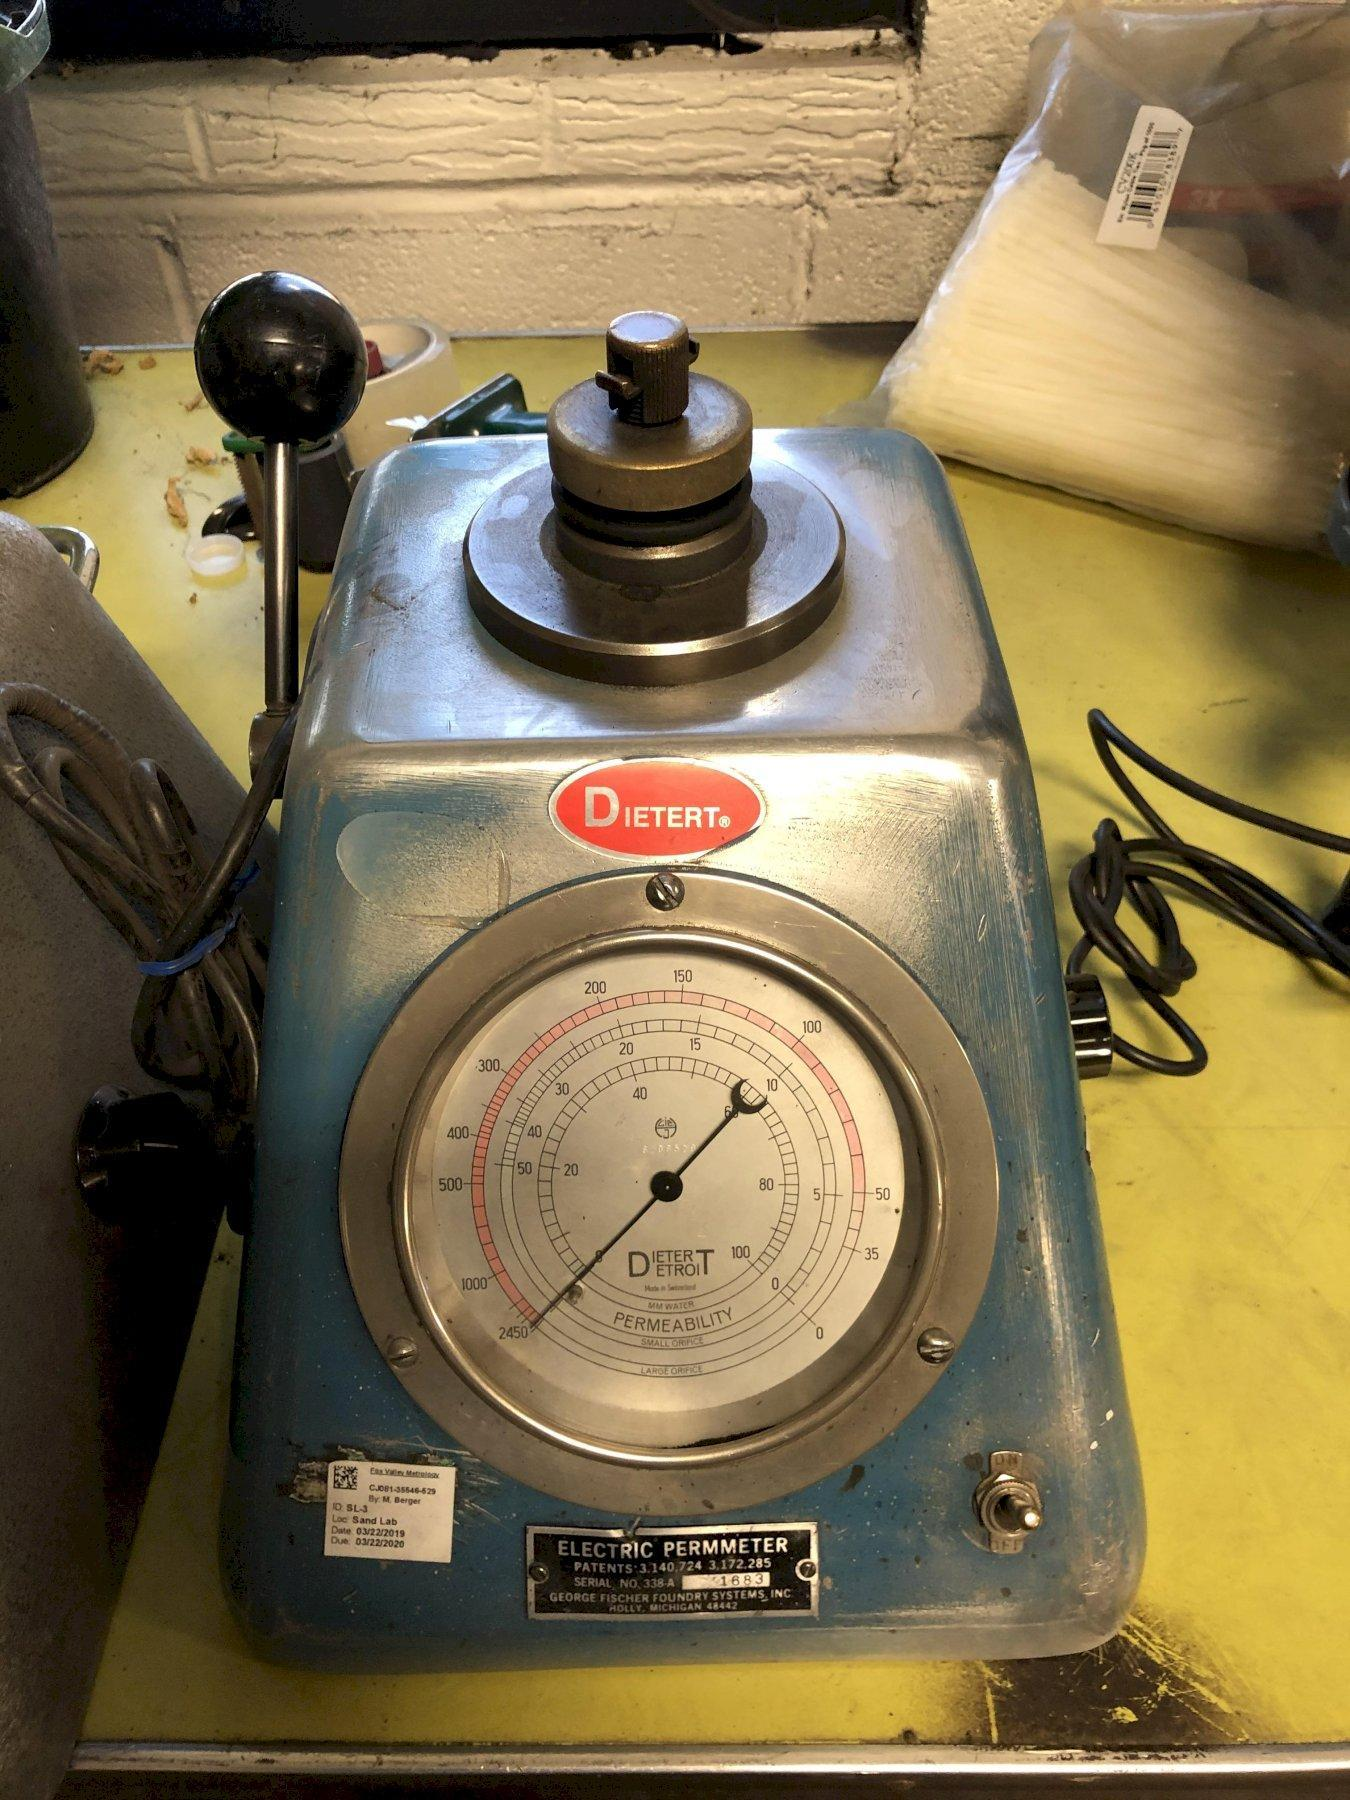 DIETERT MODEL 338-A ELECTRIC PERMMETER S/N 1683